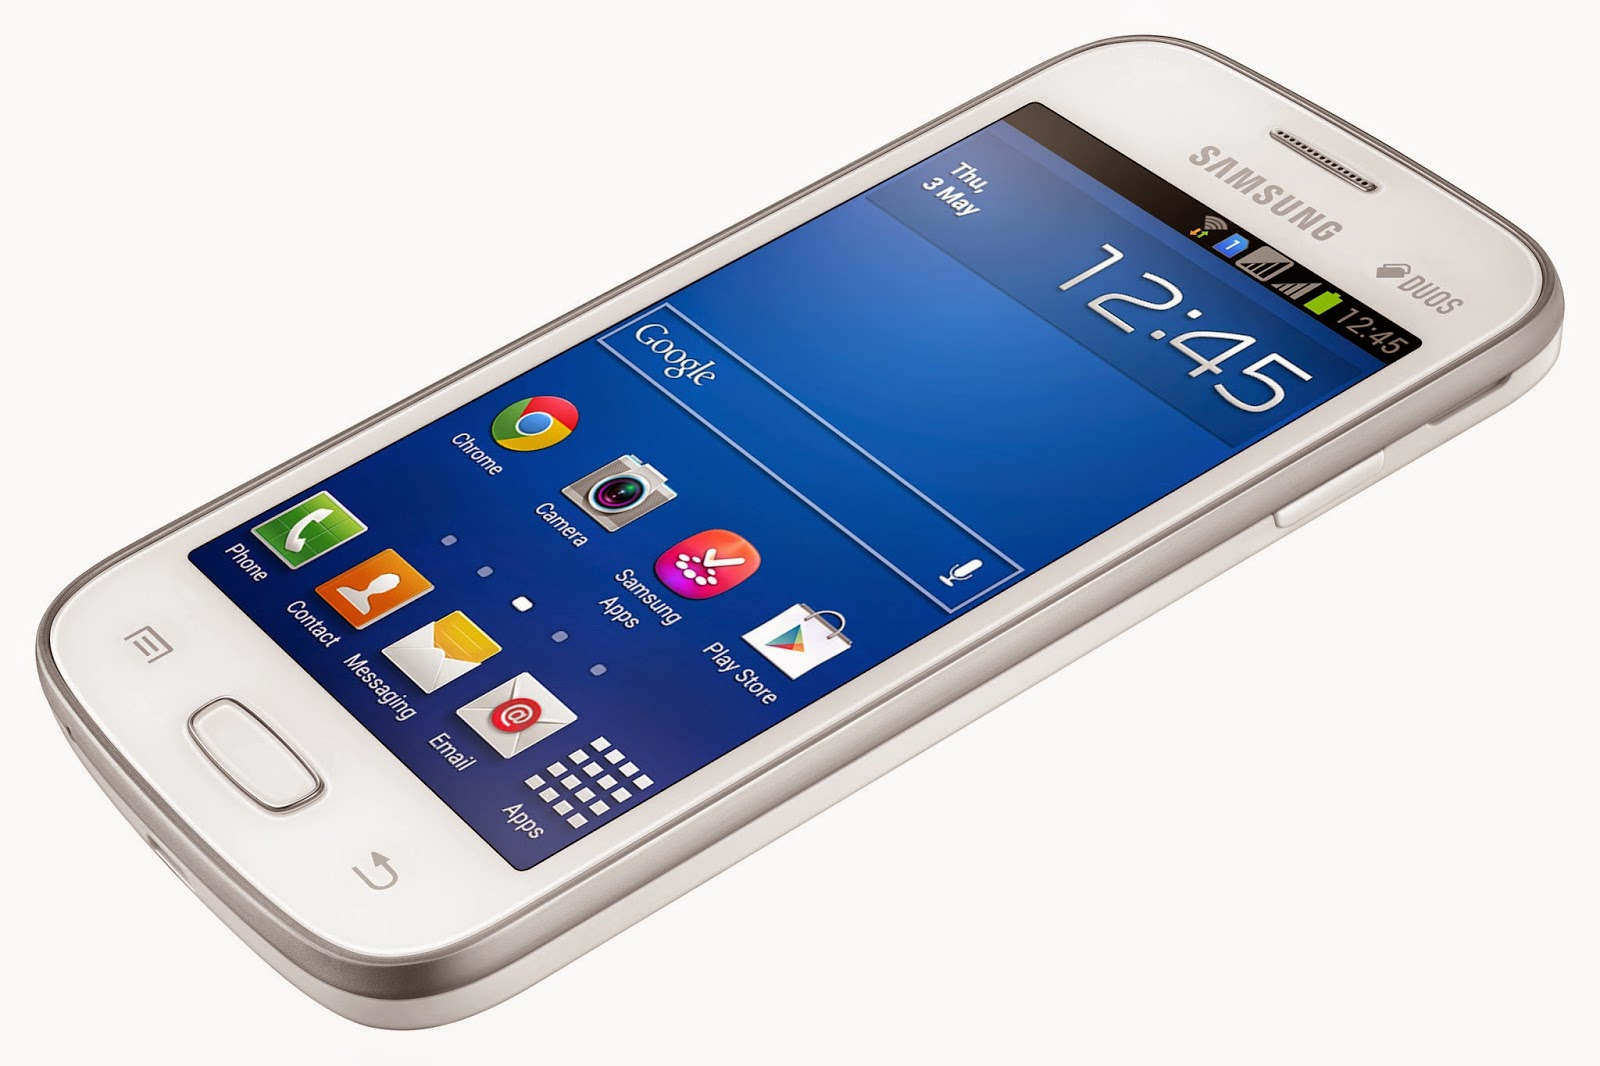 Samsung Galaxy Star 2 Smartphone officially released